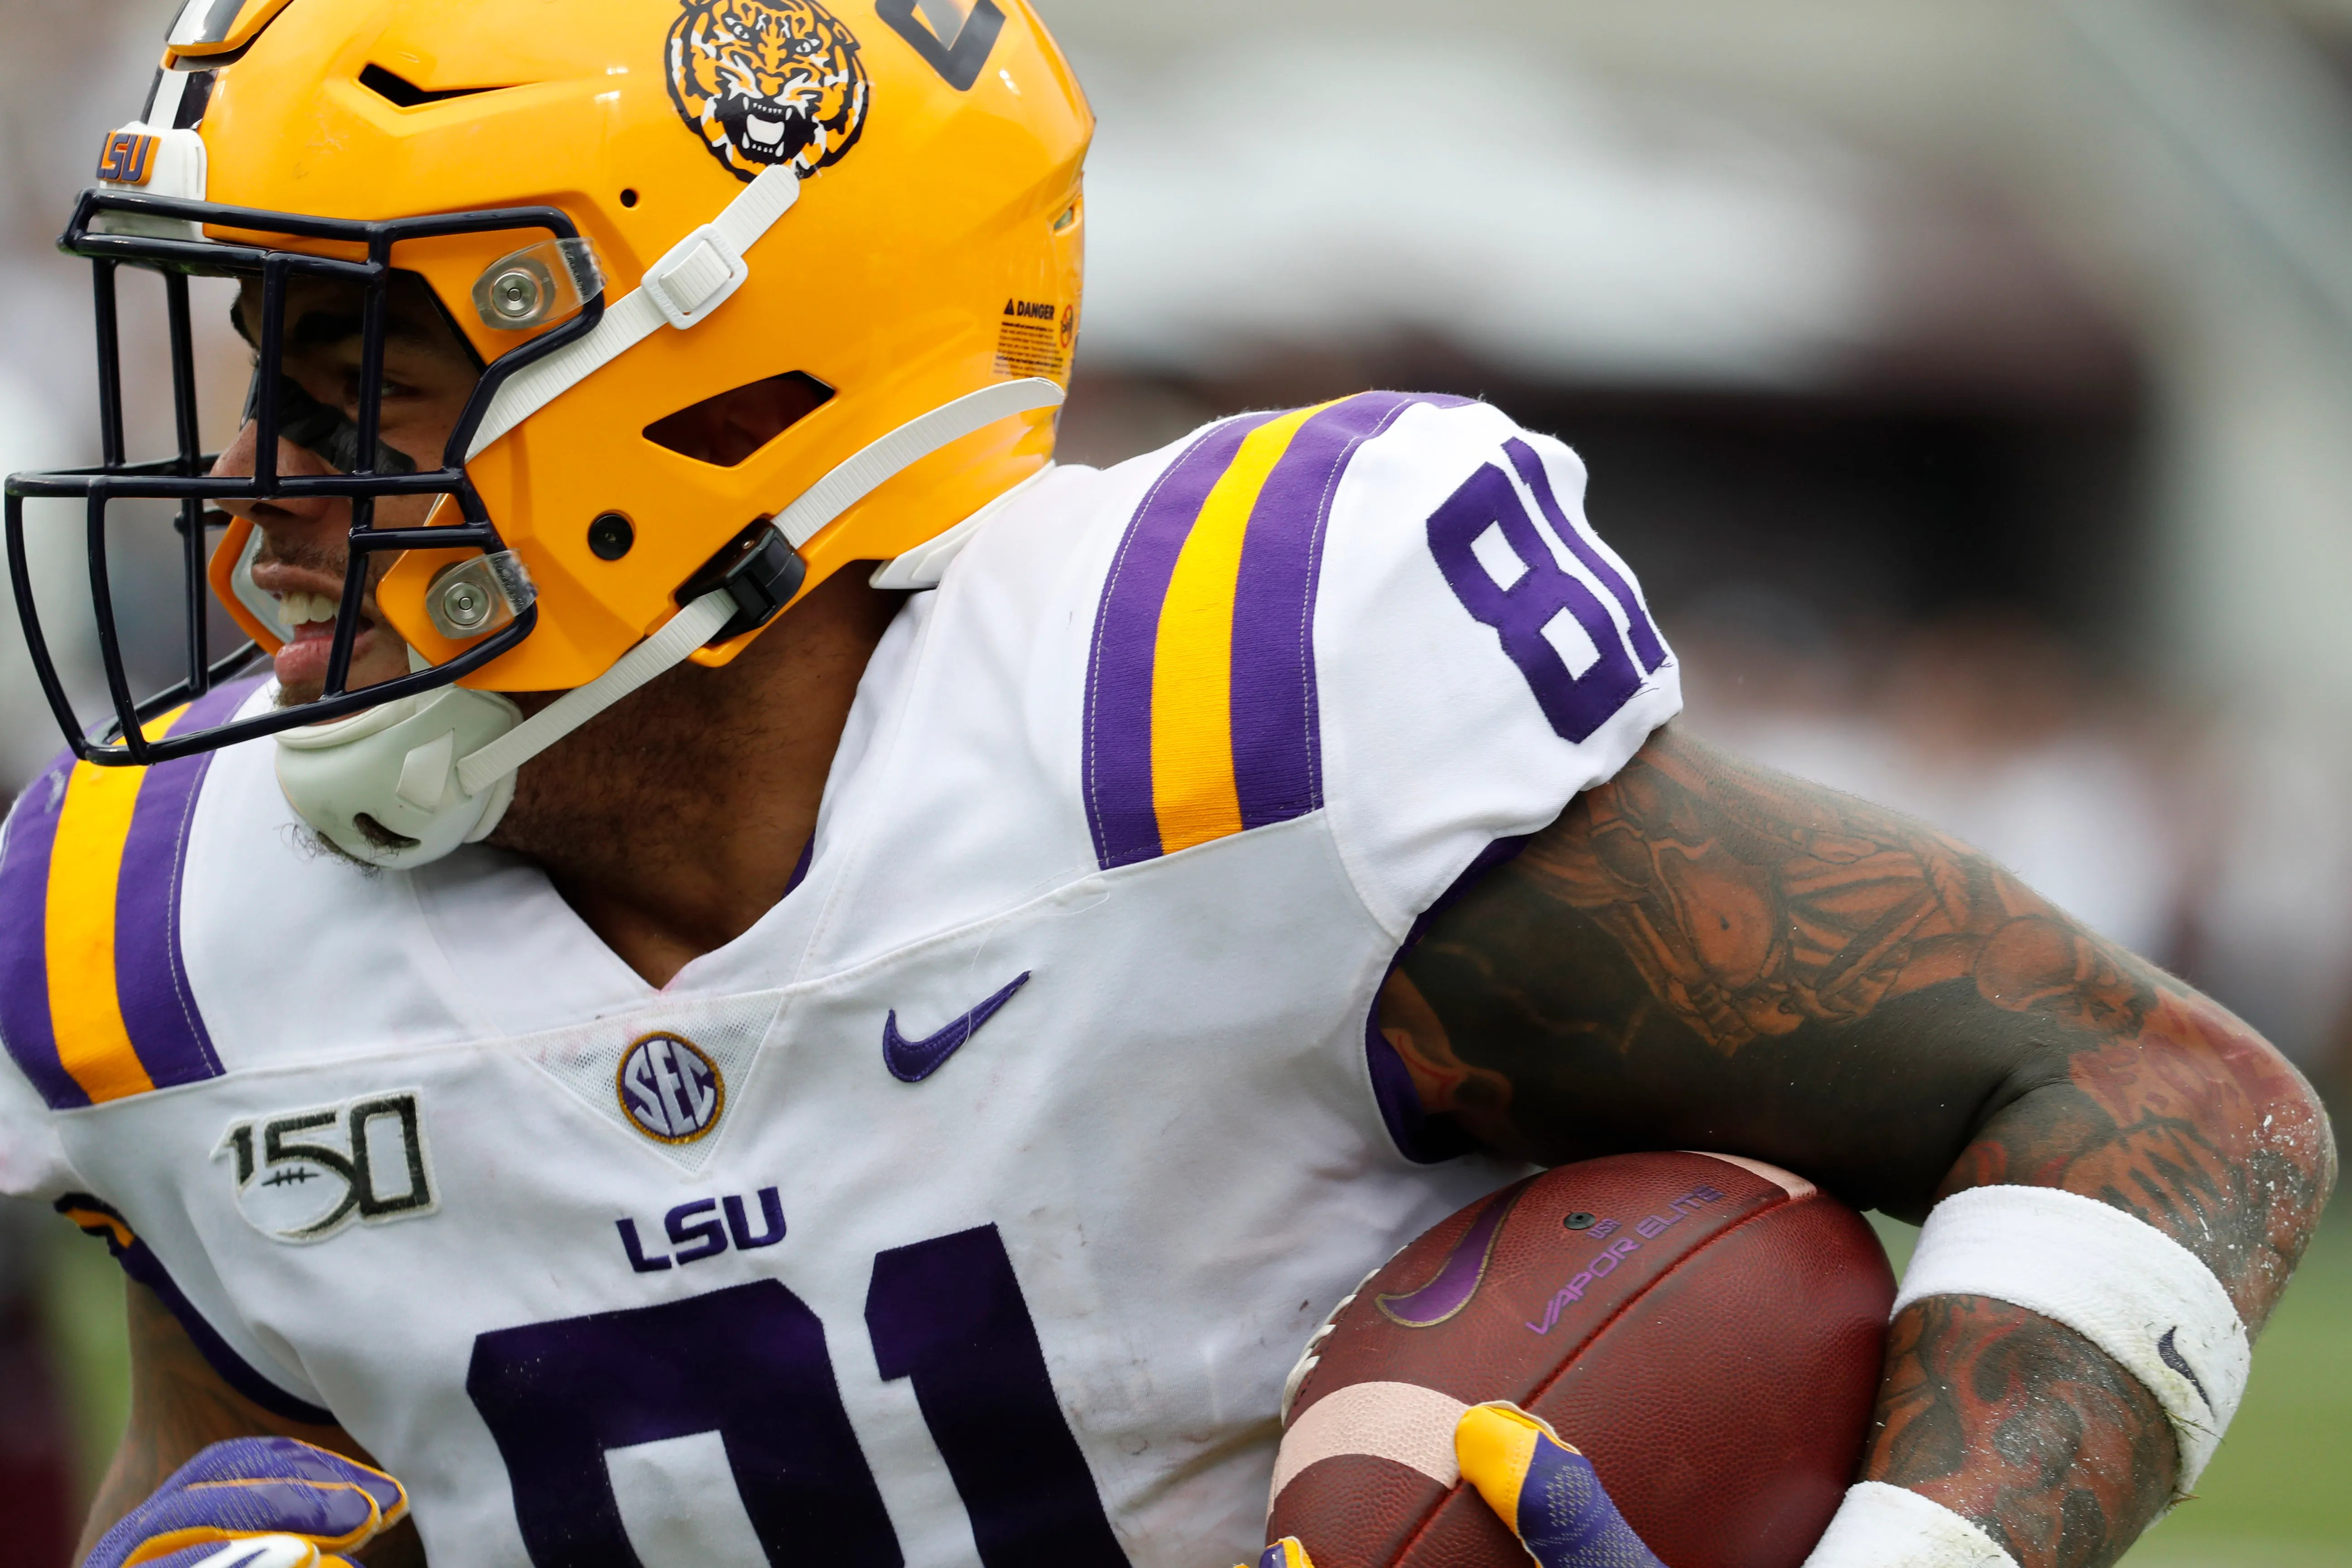 Lsu S Thaddeus Moss Is Living Up To His Dad S Name